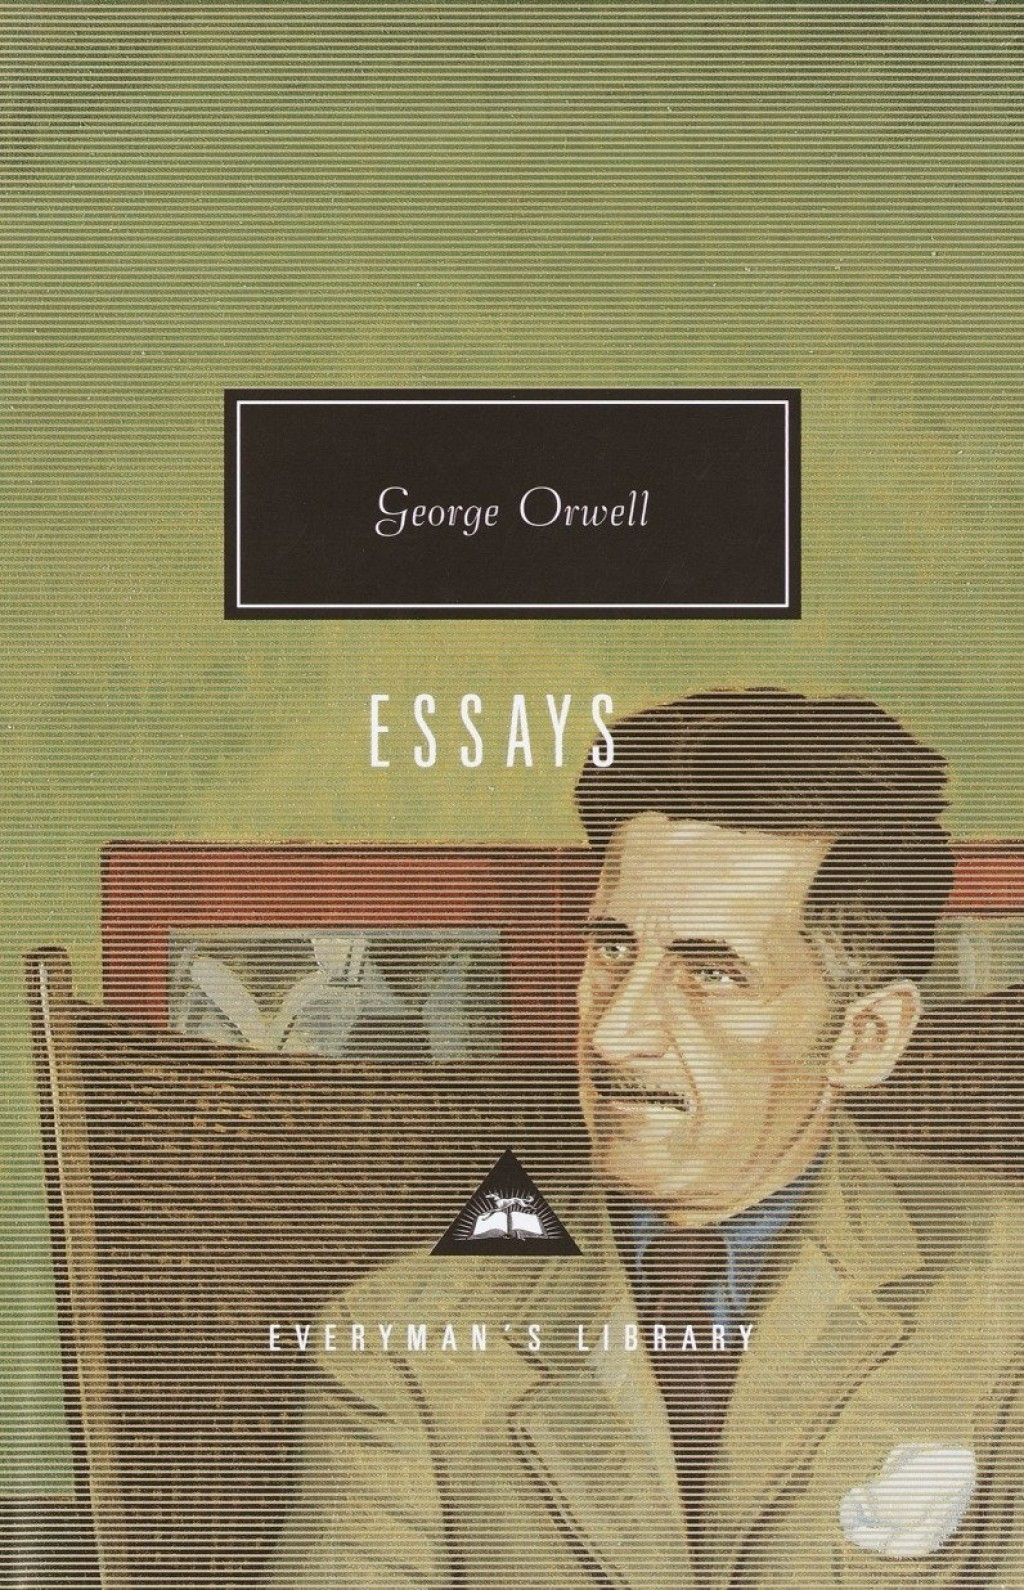 016 Orwell Essays Essay Example Singular Amazon Pdf Epub Large